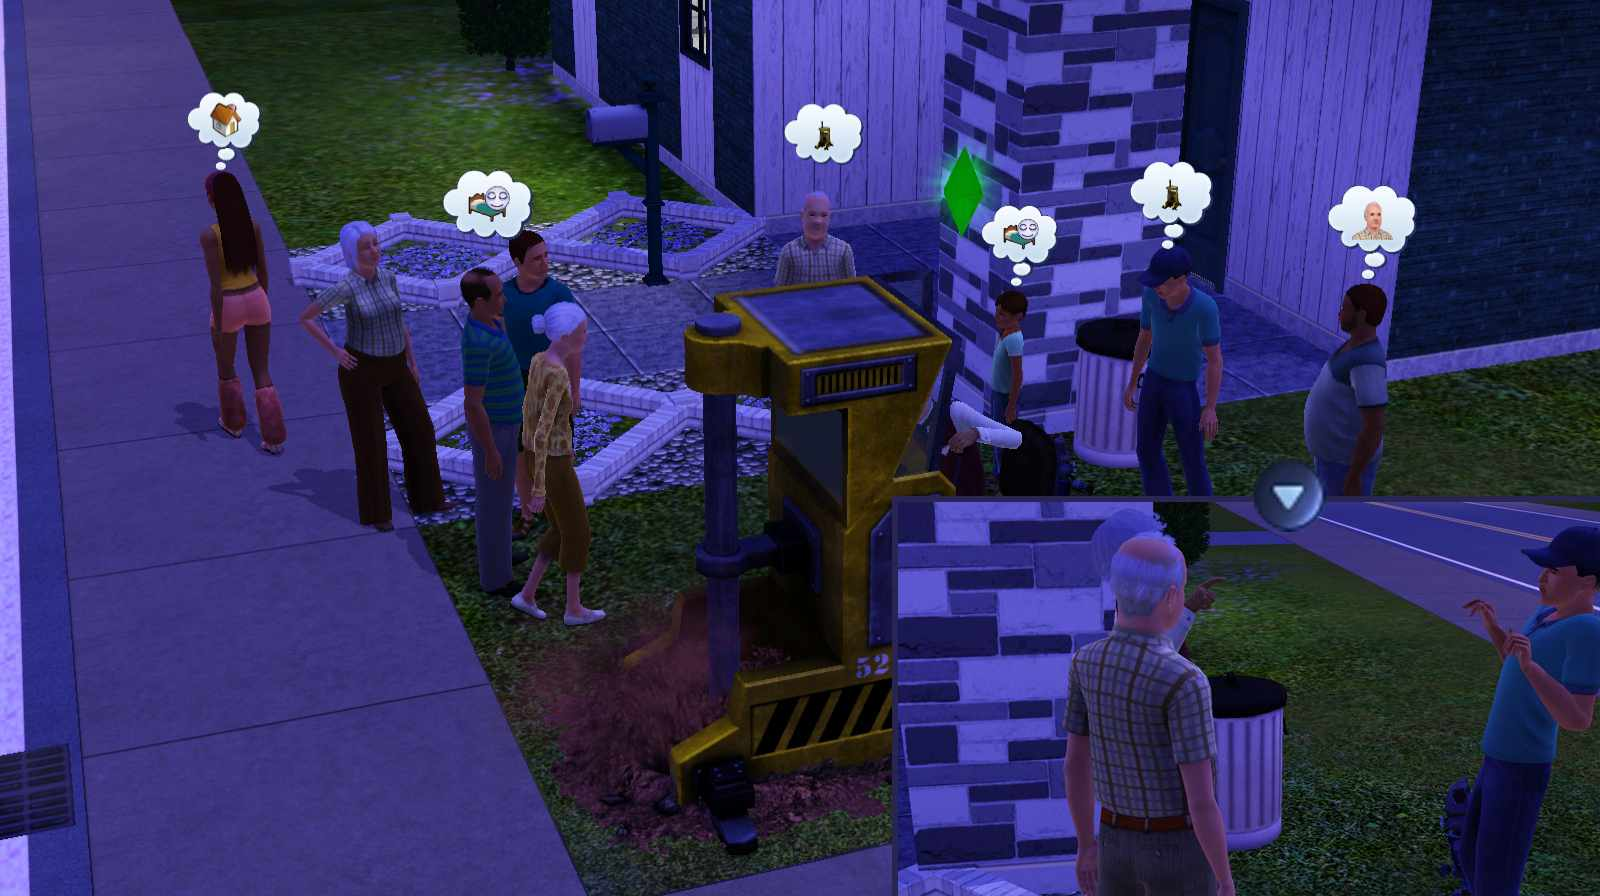 Sims 3 Ambitions - Monster Maker Lifetime Wish